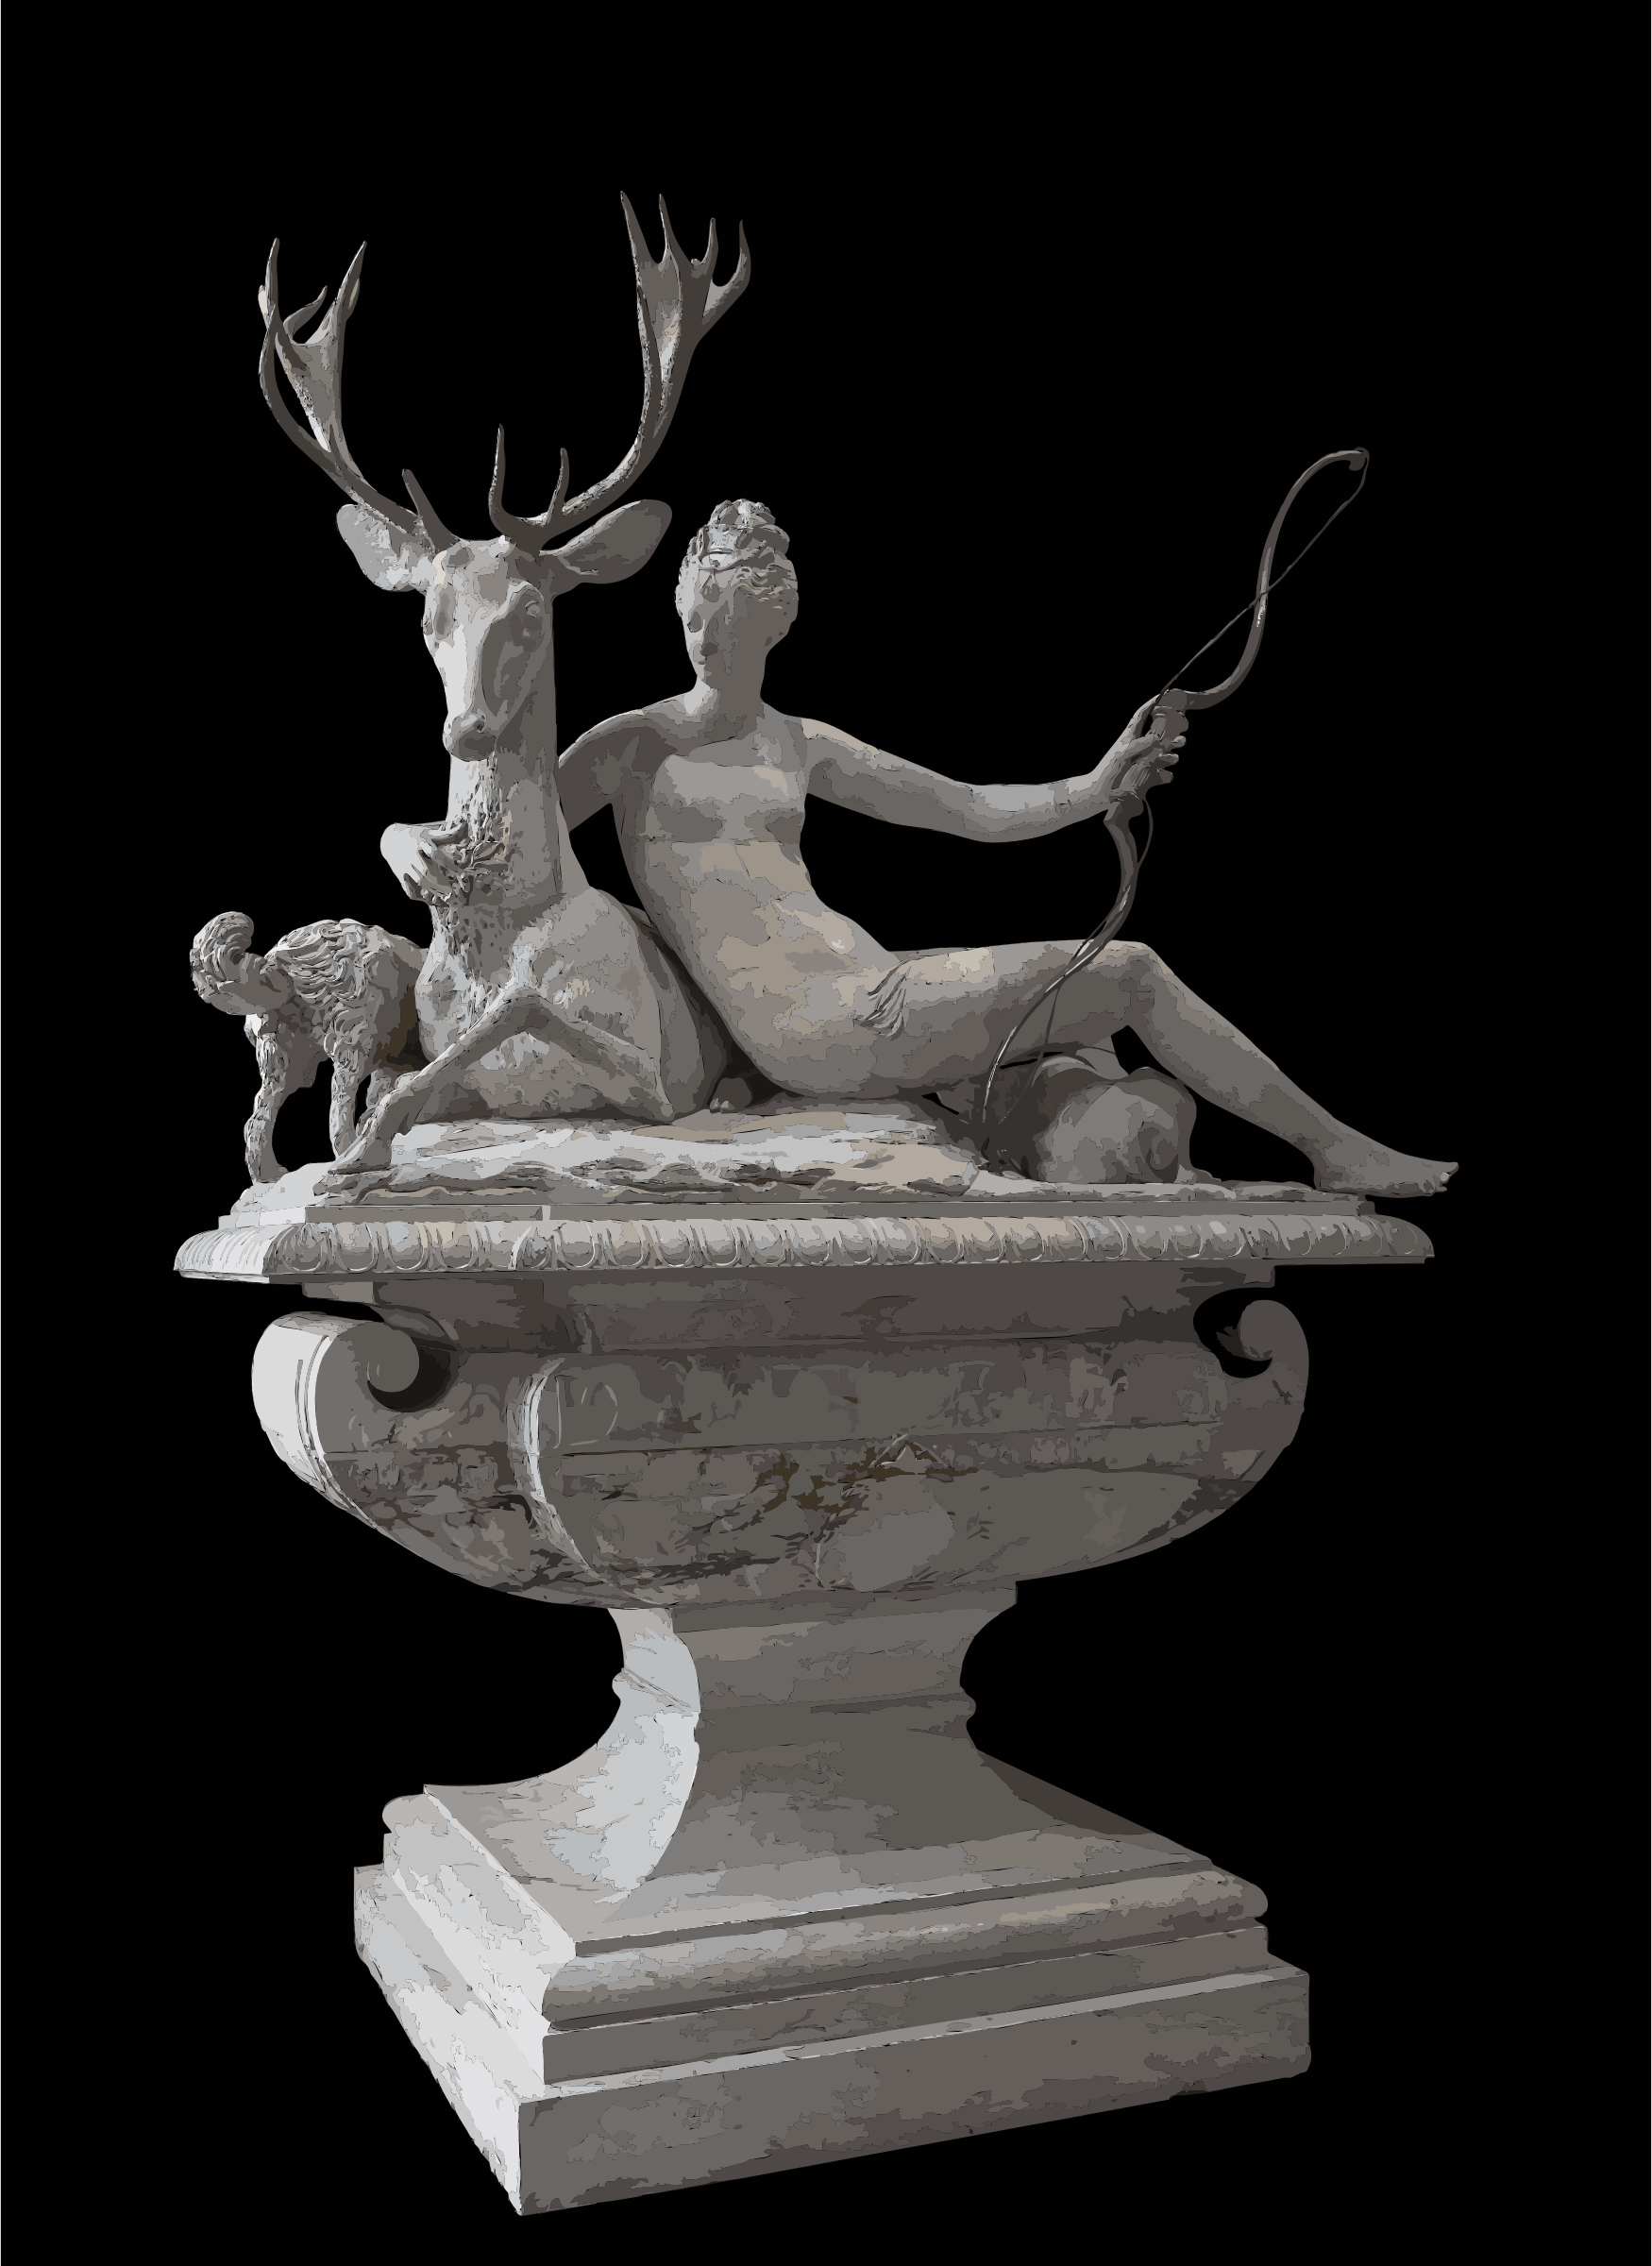 Fontaine Diane Fountain Diana Anet Louvre MR 1581, MR sup 123 by 5ncrcv+exryzbsq0bgao